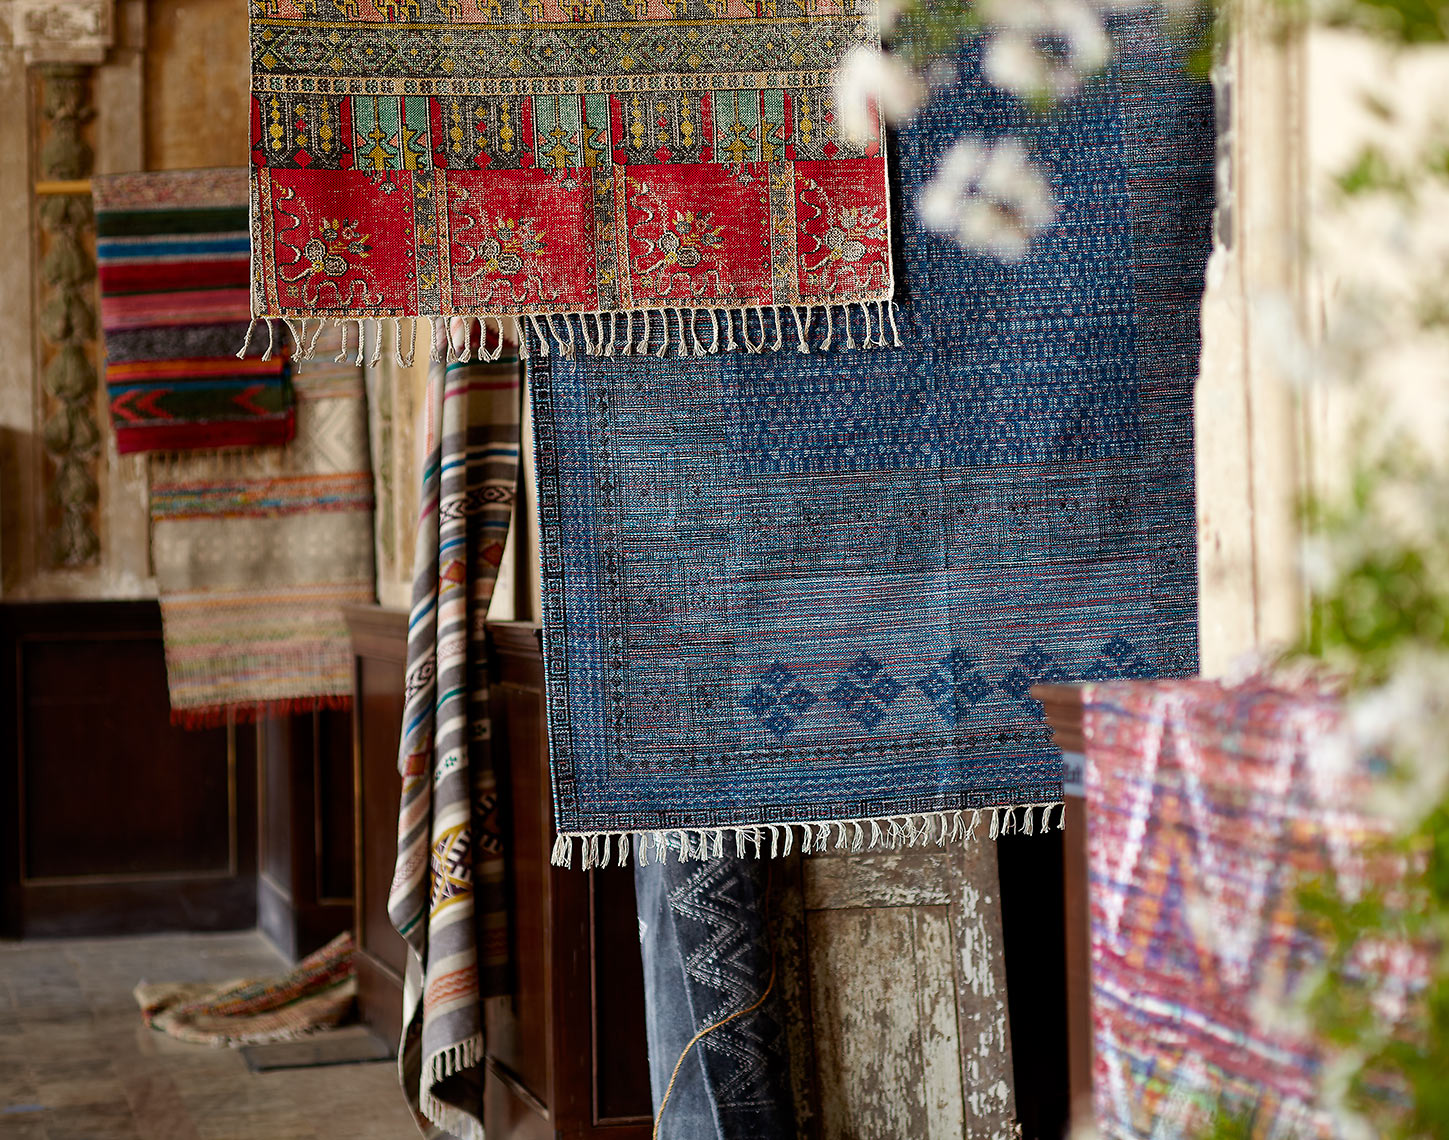 Hanging rugs in market